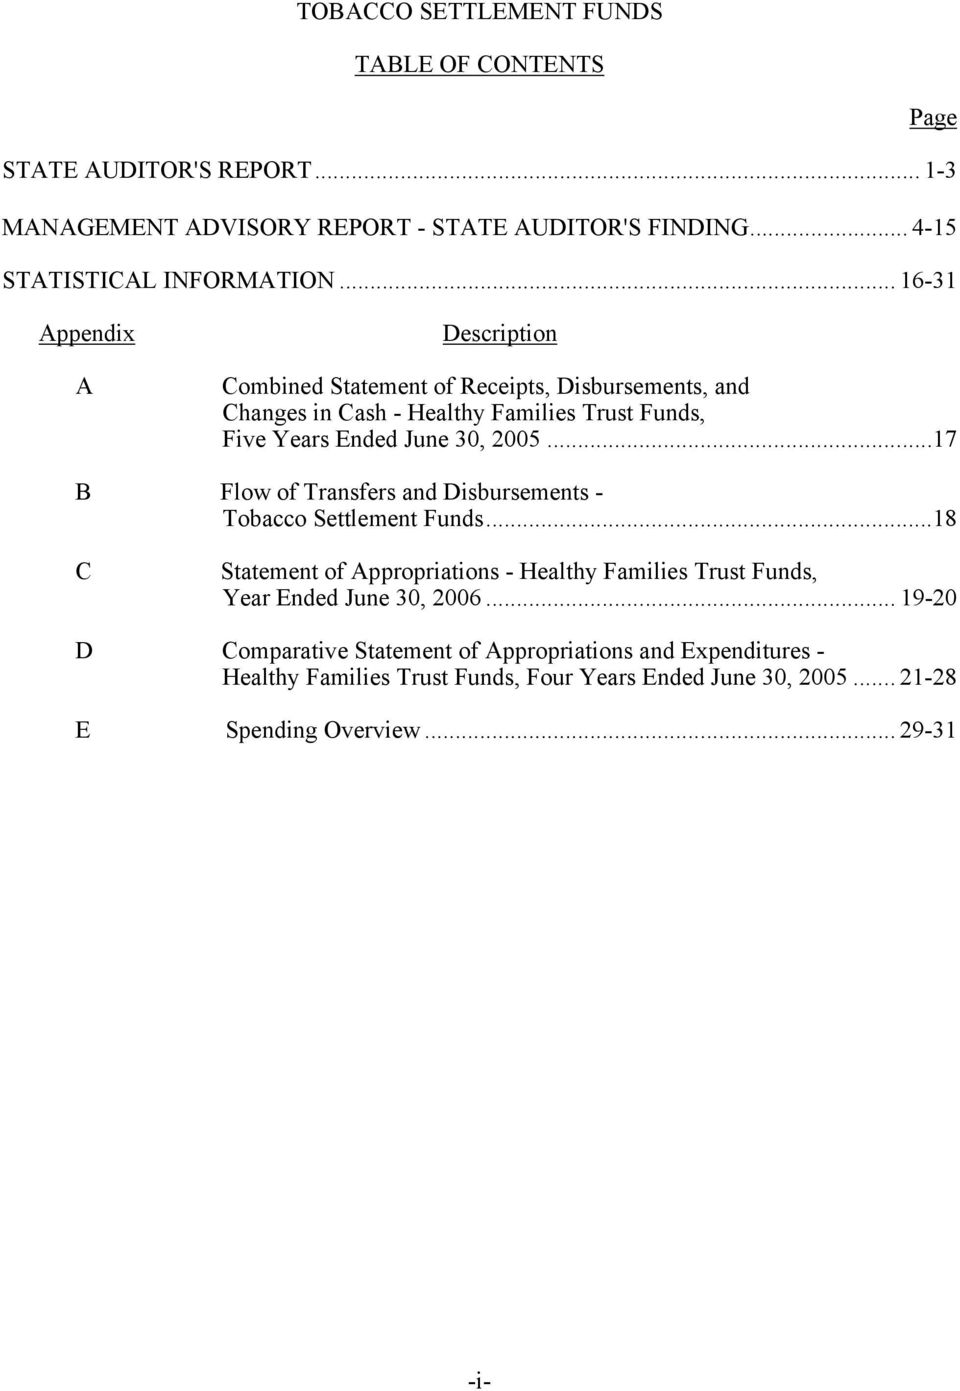 ..17 B Flow of Transfers and Disbursements - Tobacco Settlement Funds...18 C Statement of Appropriations - Healthy Families Trust Funds, Year Ended June 30, 2006.